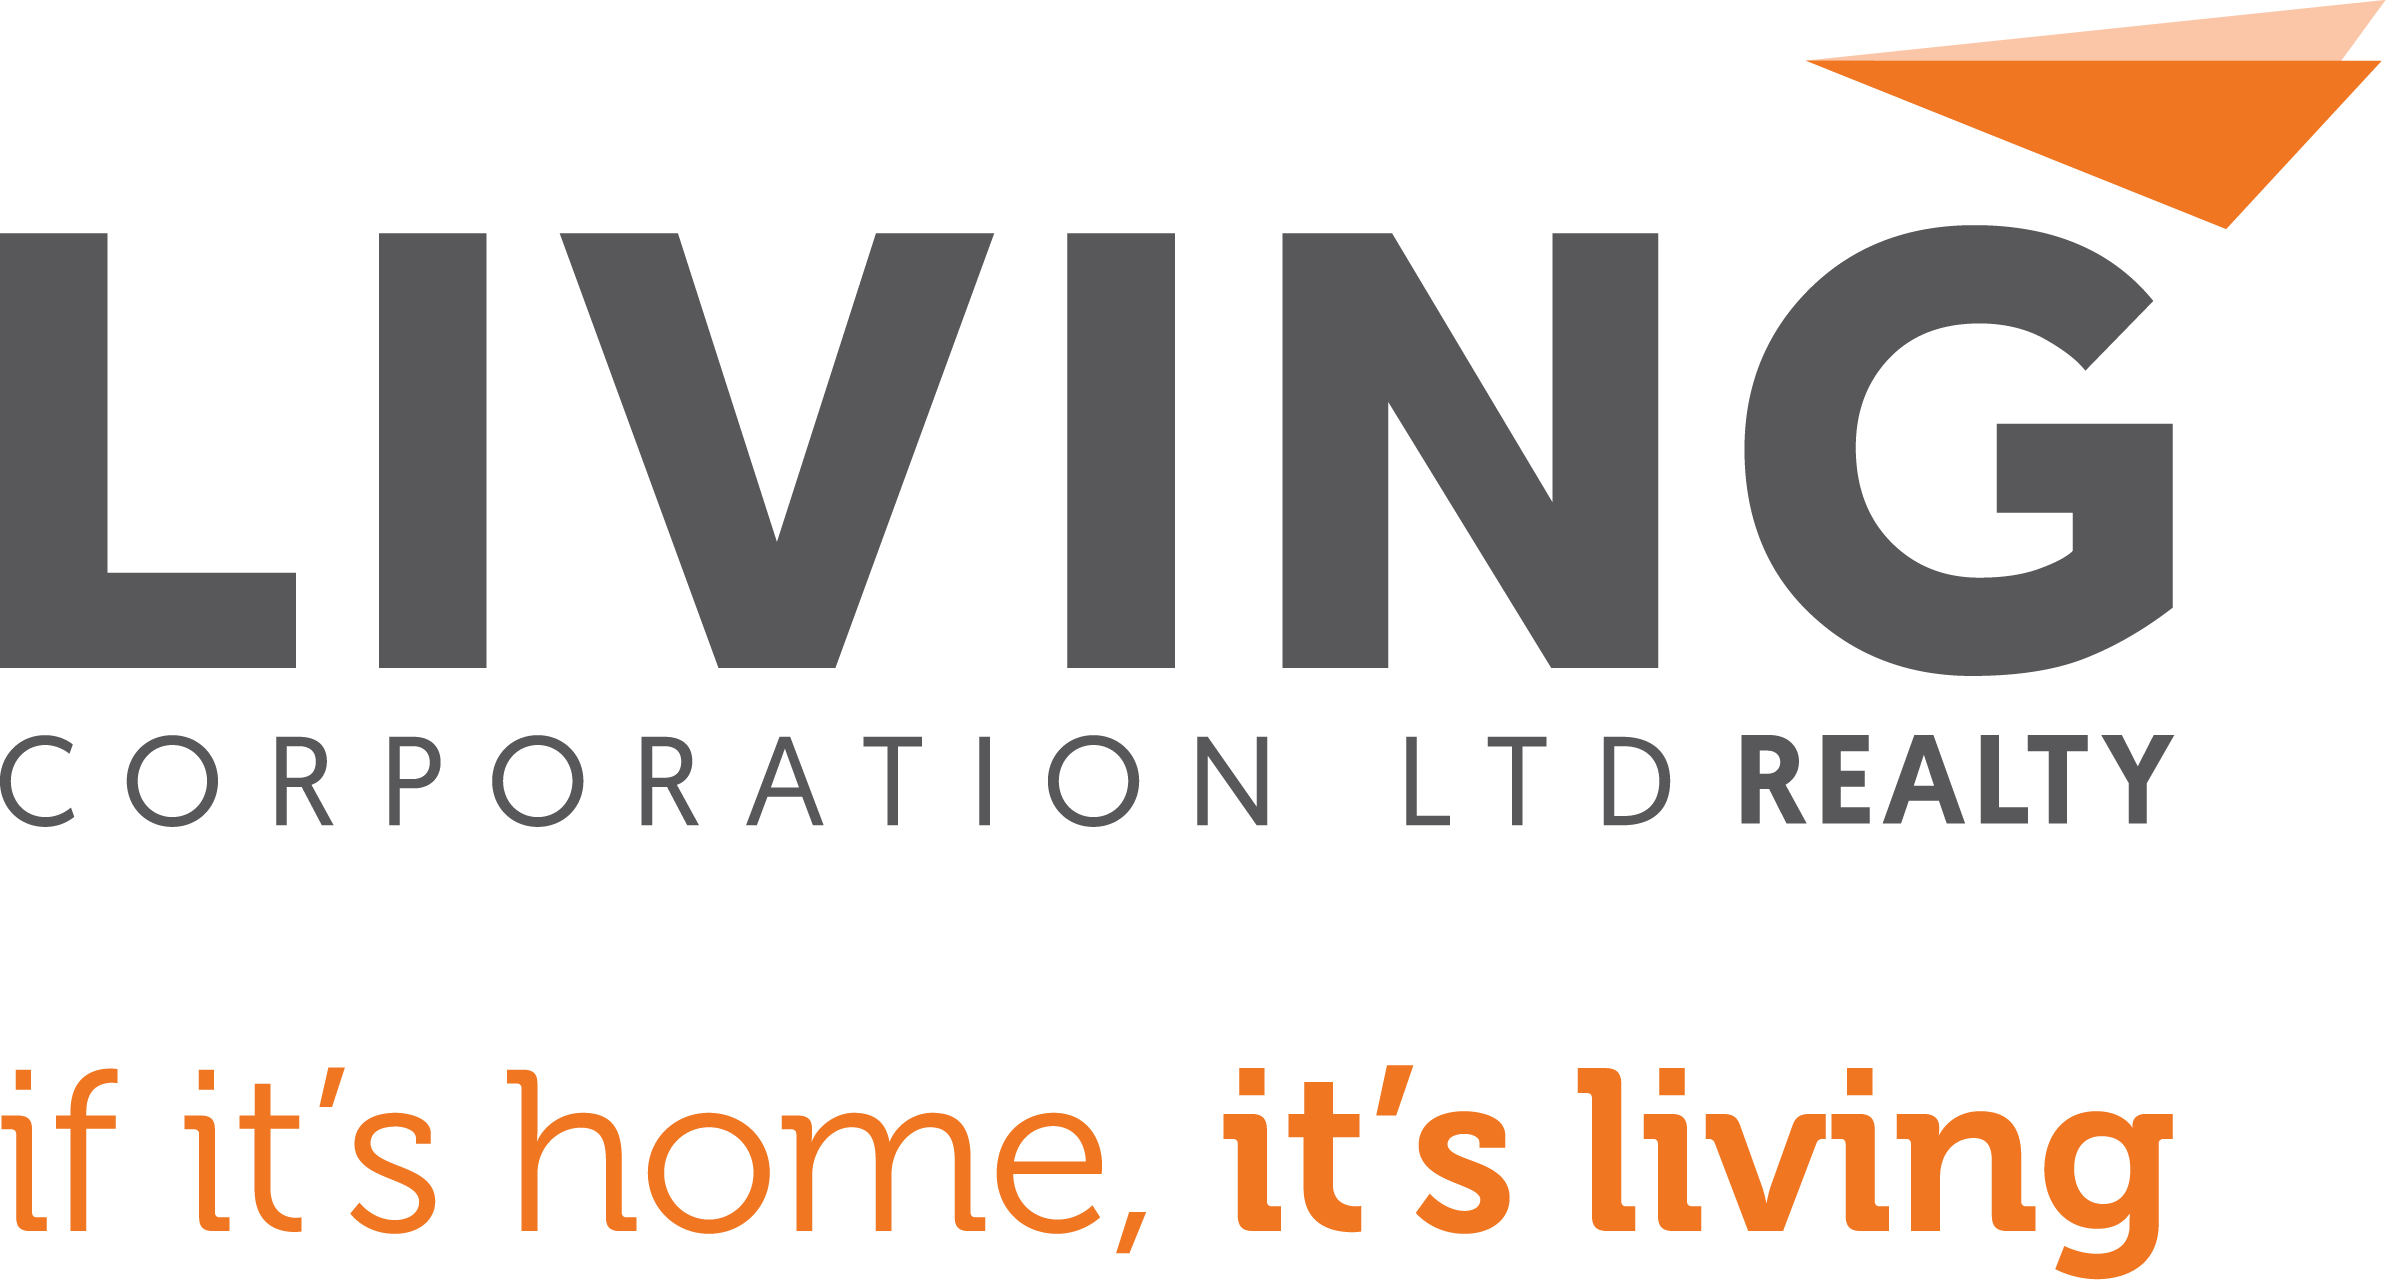 Living Corporation Limited